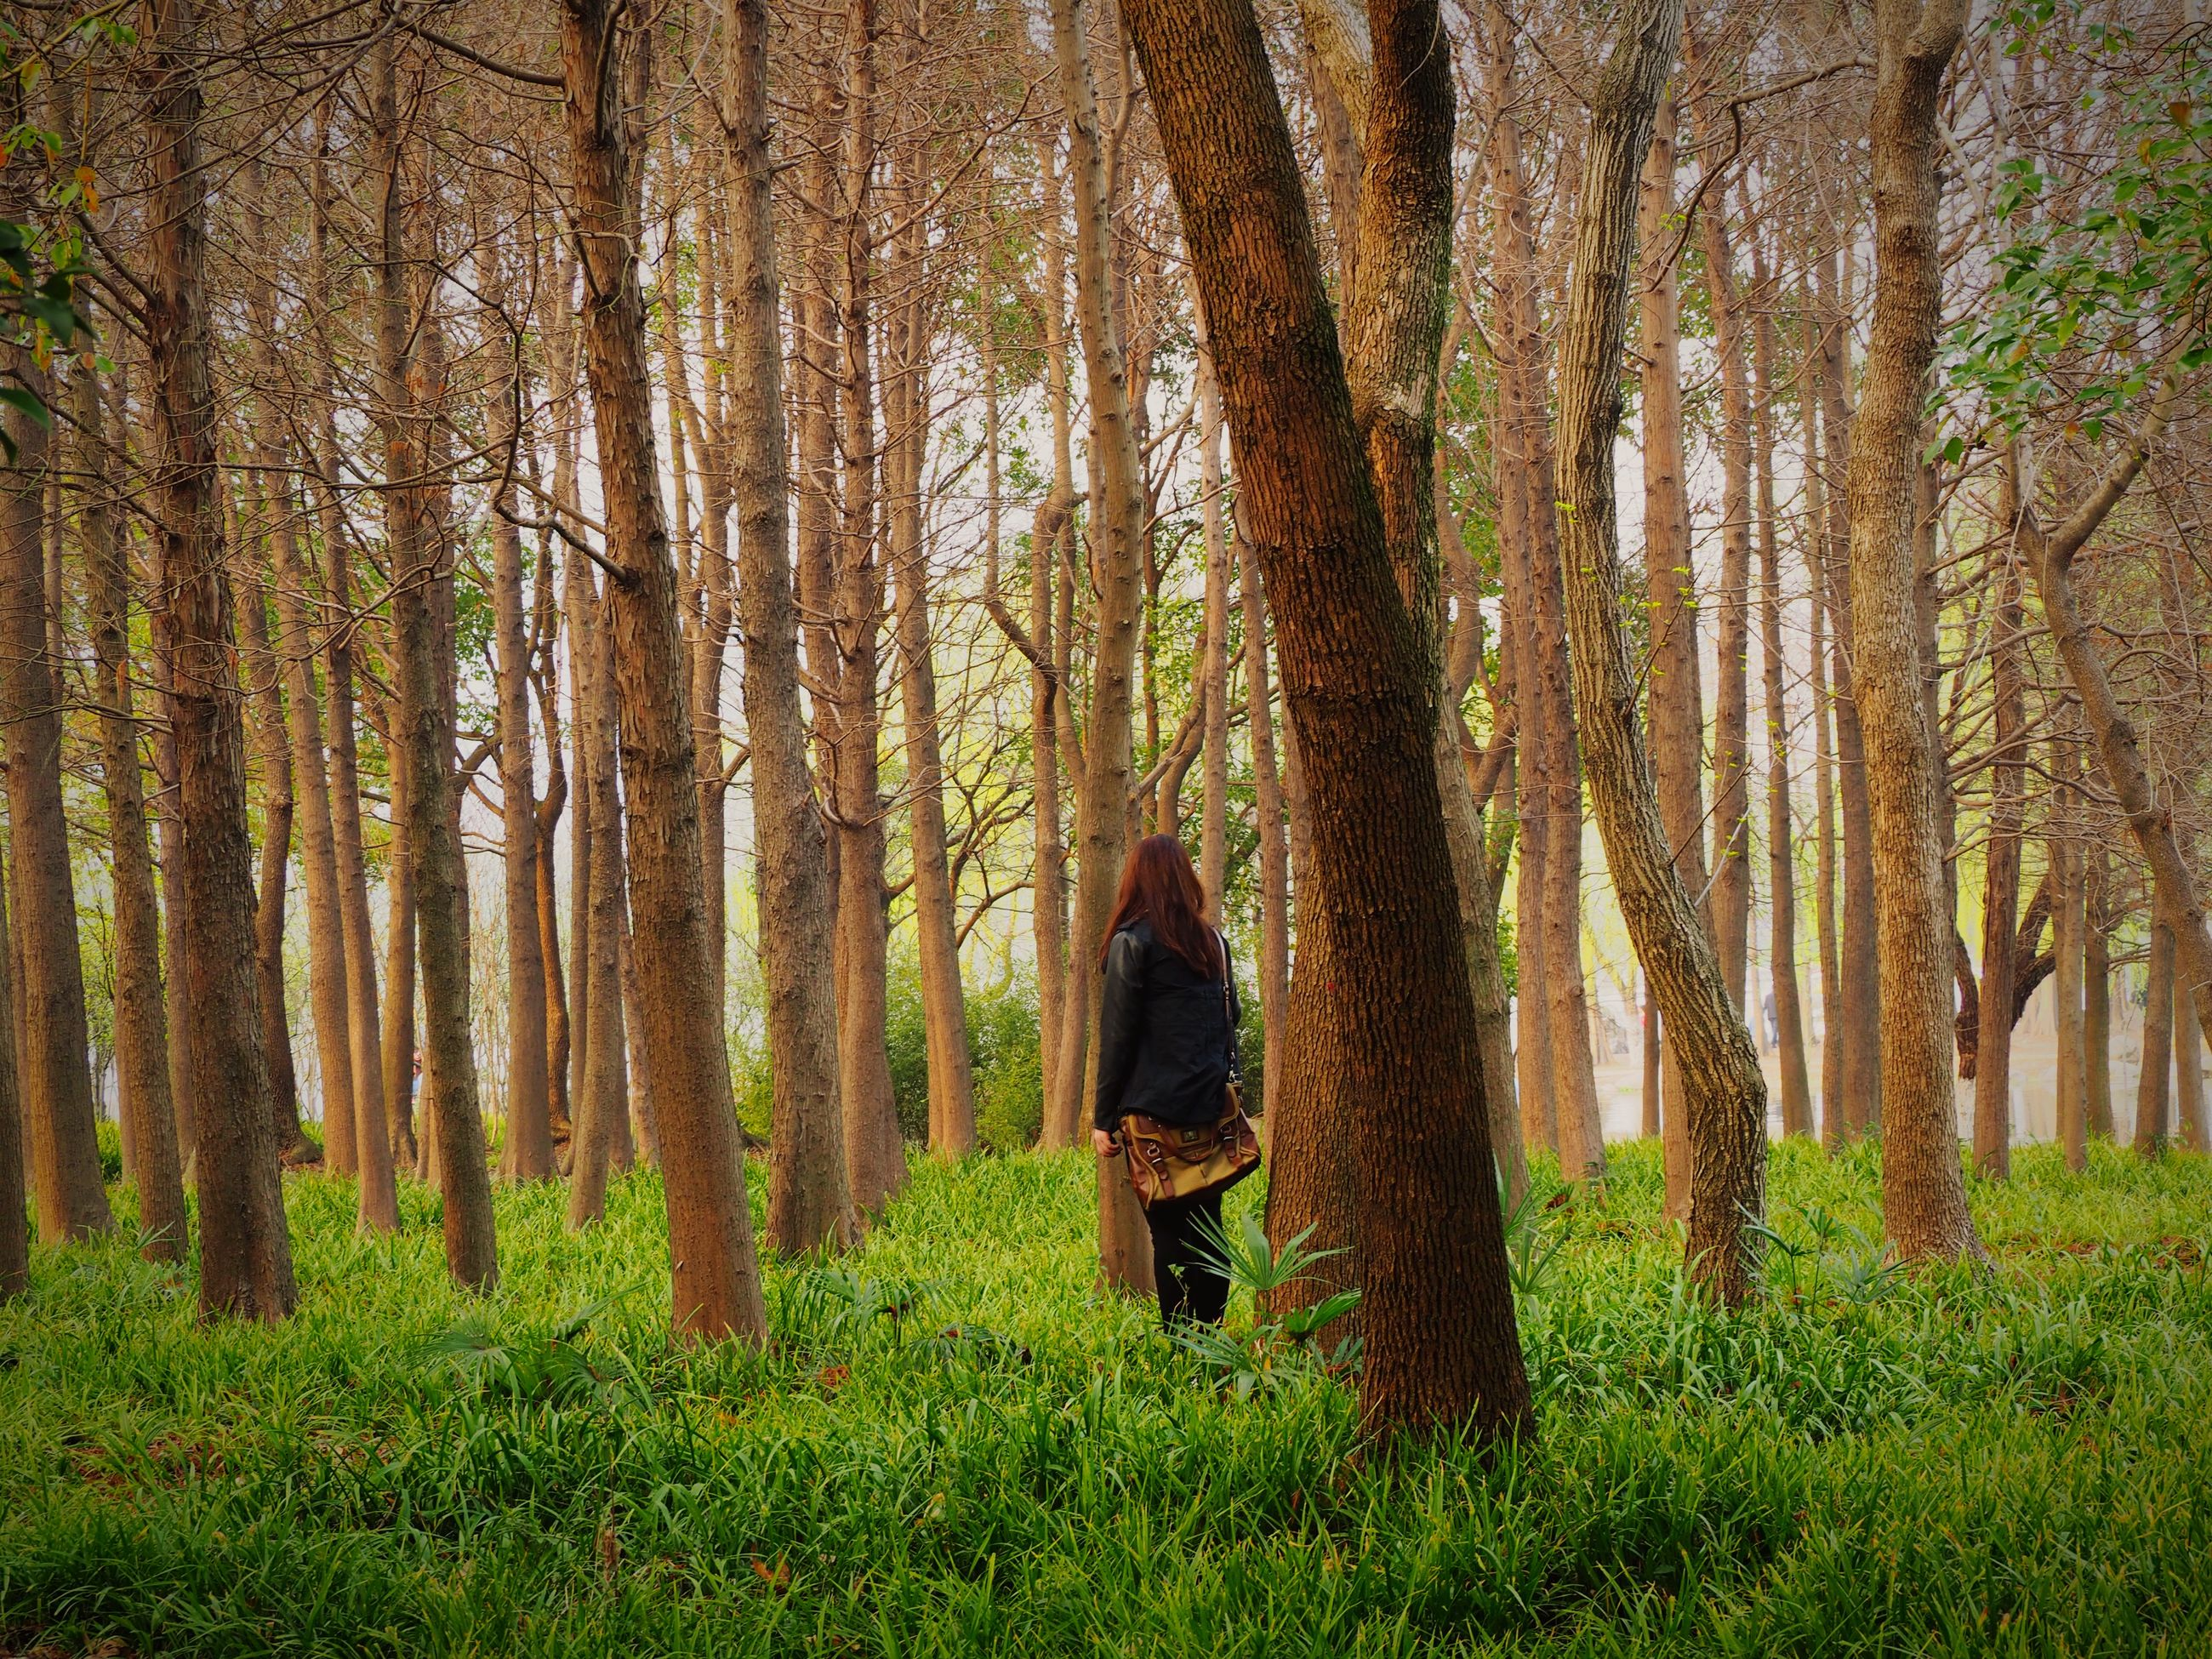 tree, grass, growth, lifestyles, tree trunk, green color, leisure activity, rear view, tranquility, nature, men, forest, field, full length, standing, person, tranquil scene, grassy